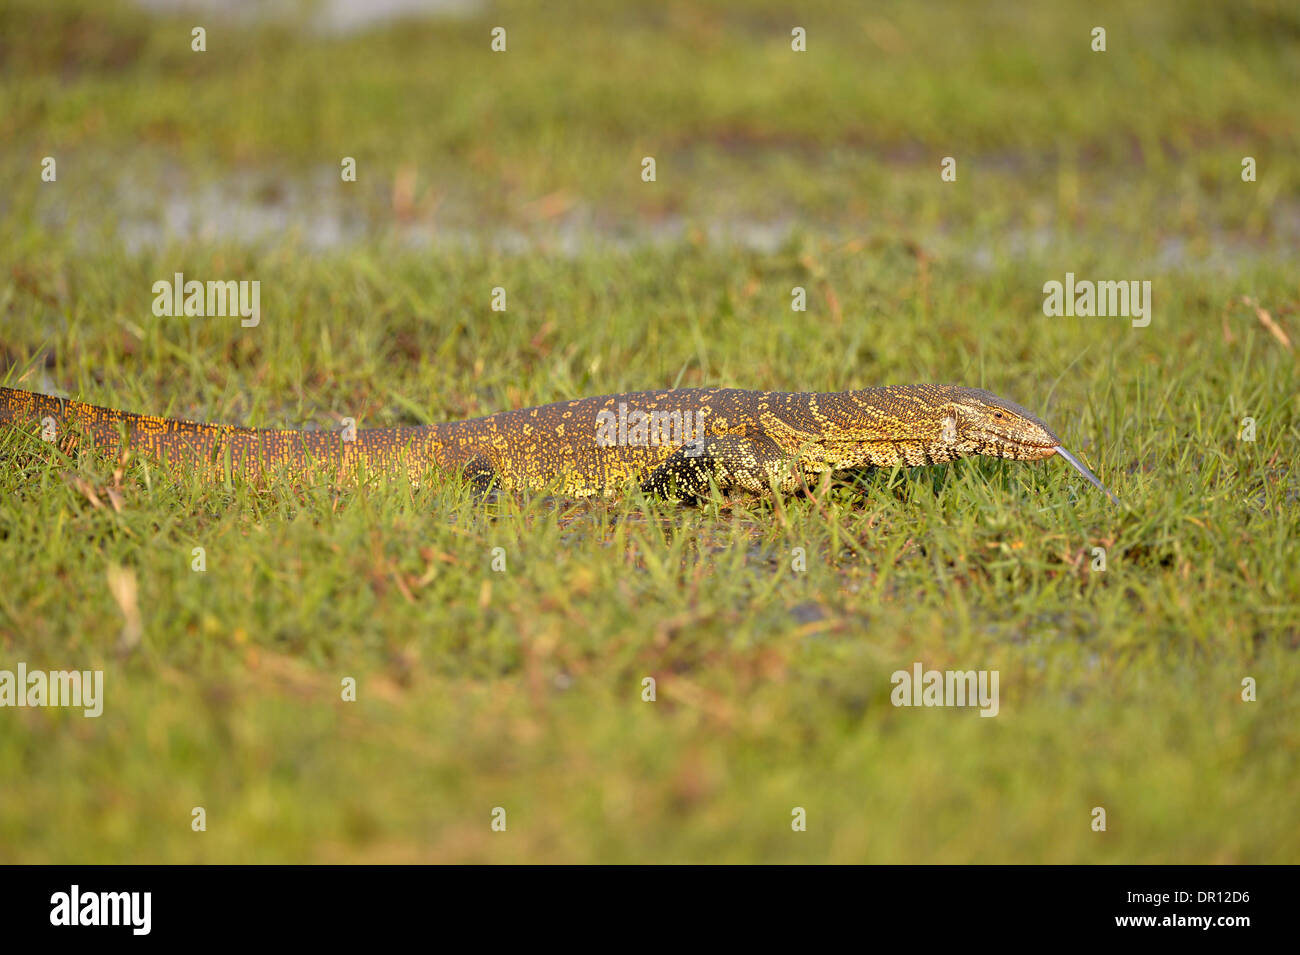 Nile Monitor Lizard (Varanus niloticus) walking through waterlogged grass, witrh tongue extended, Kafue National Park, Zambia, S - Stock Image